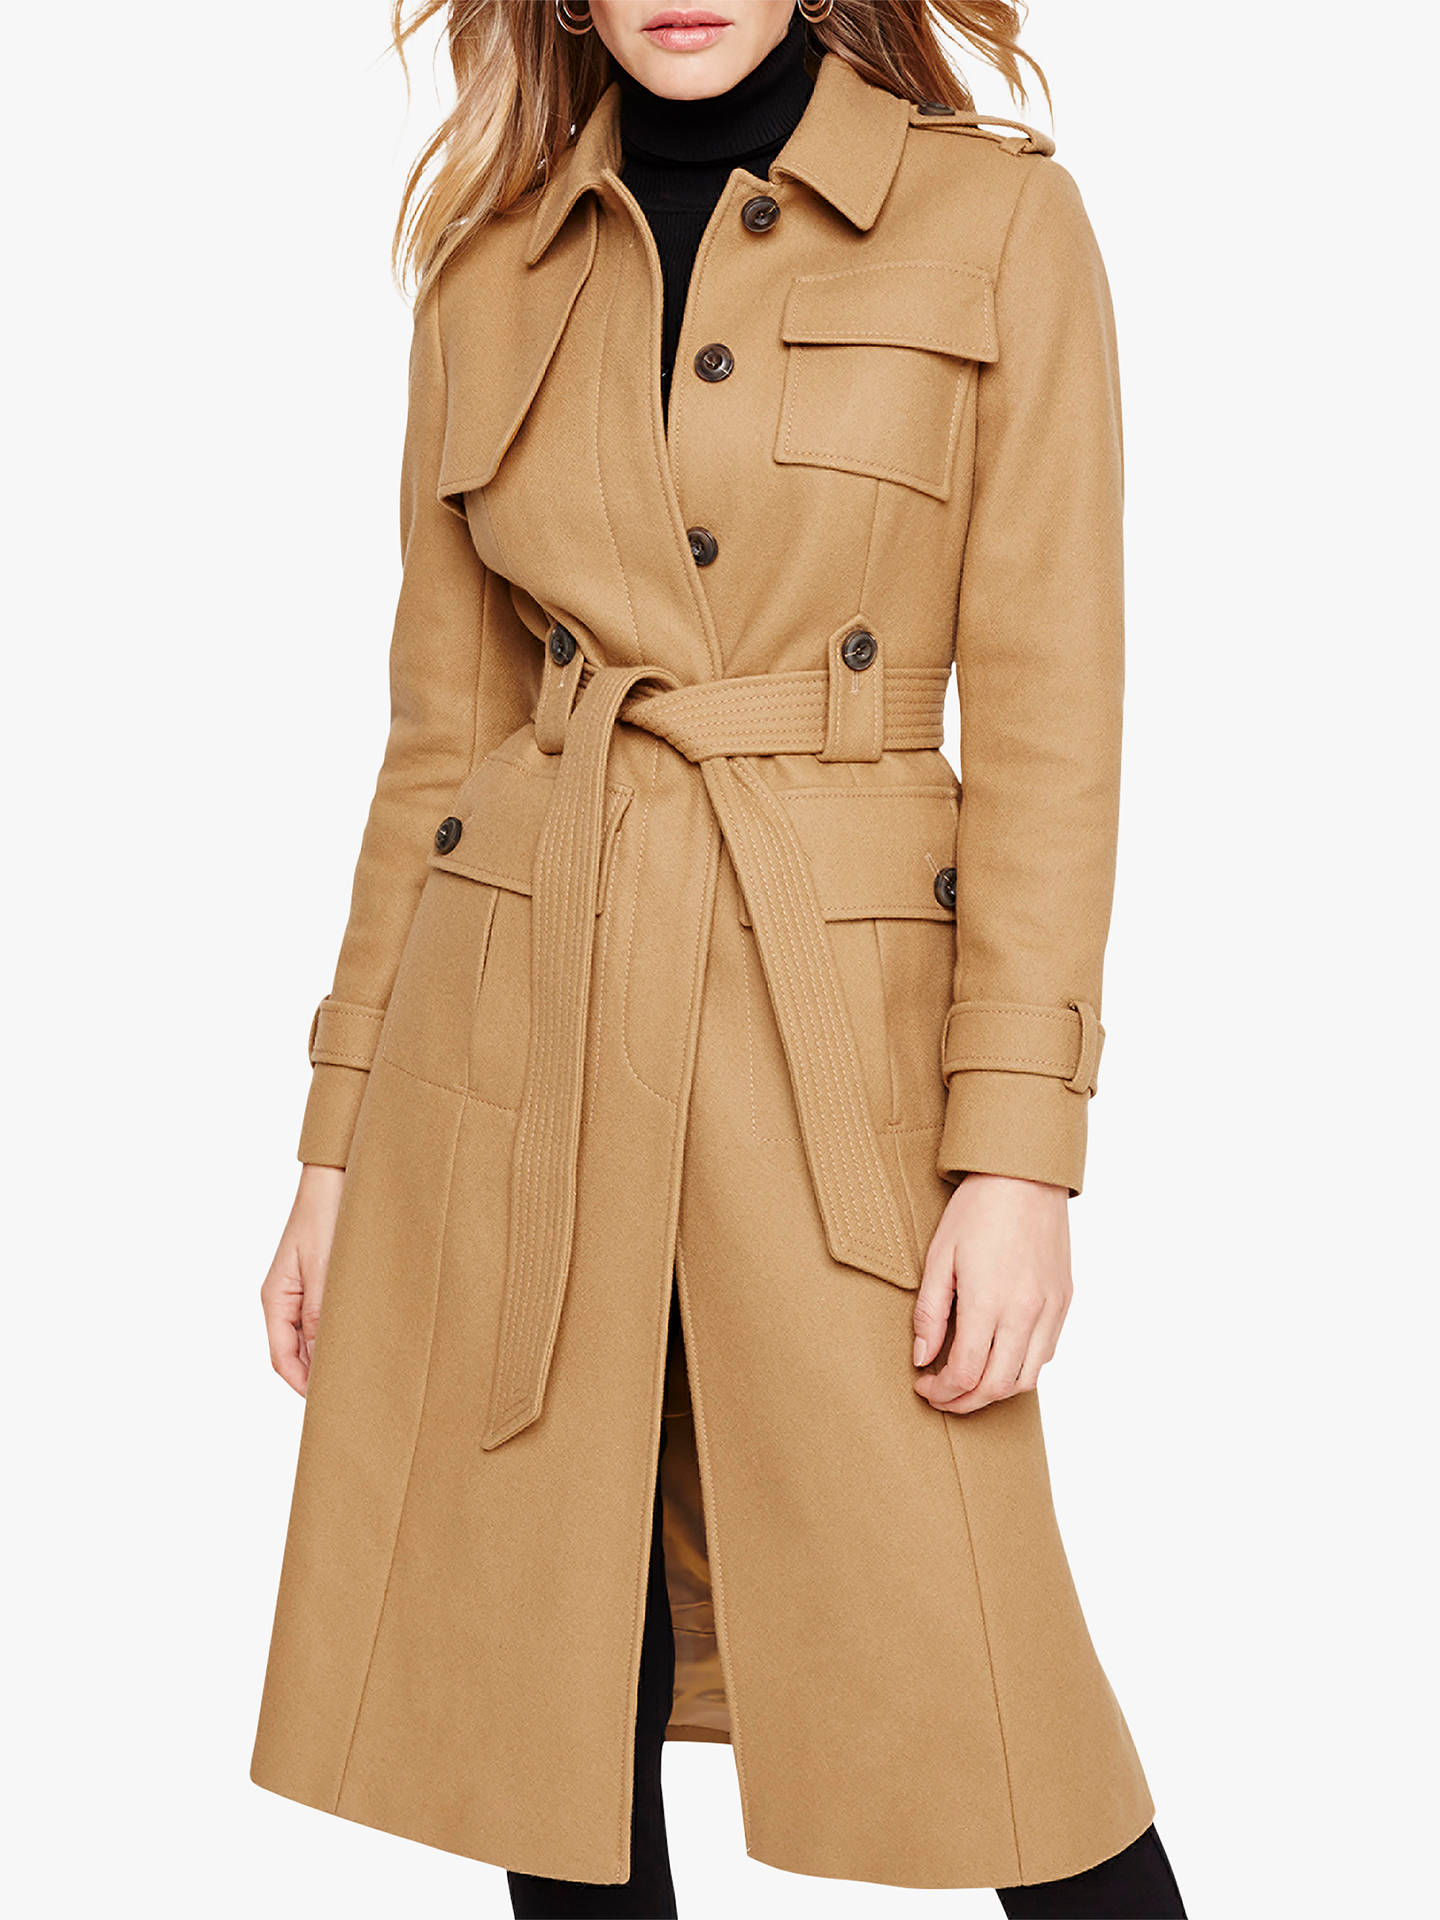 37081324bd Buy Damsel in a Dress Eleni Belted Trench Coat, Camel, 12 Online at  johnlewis ...